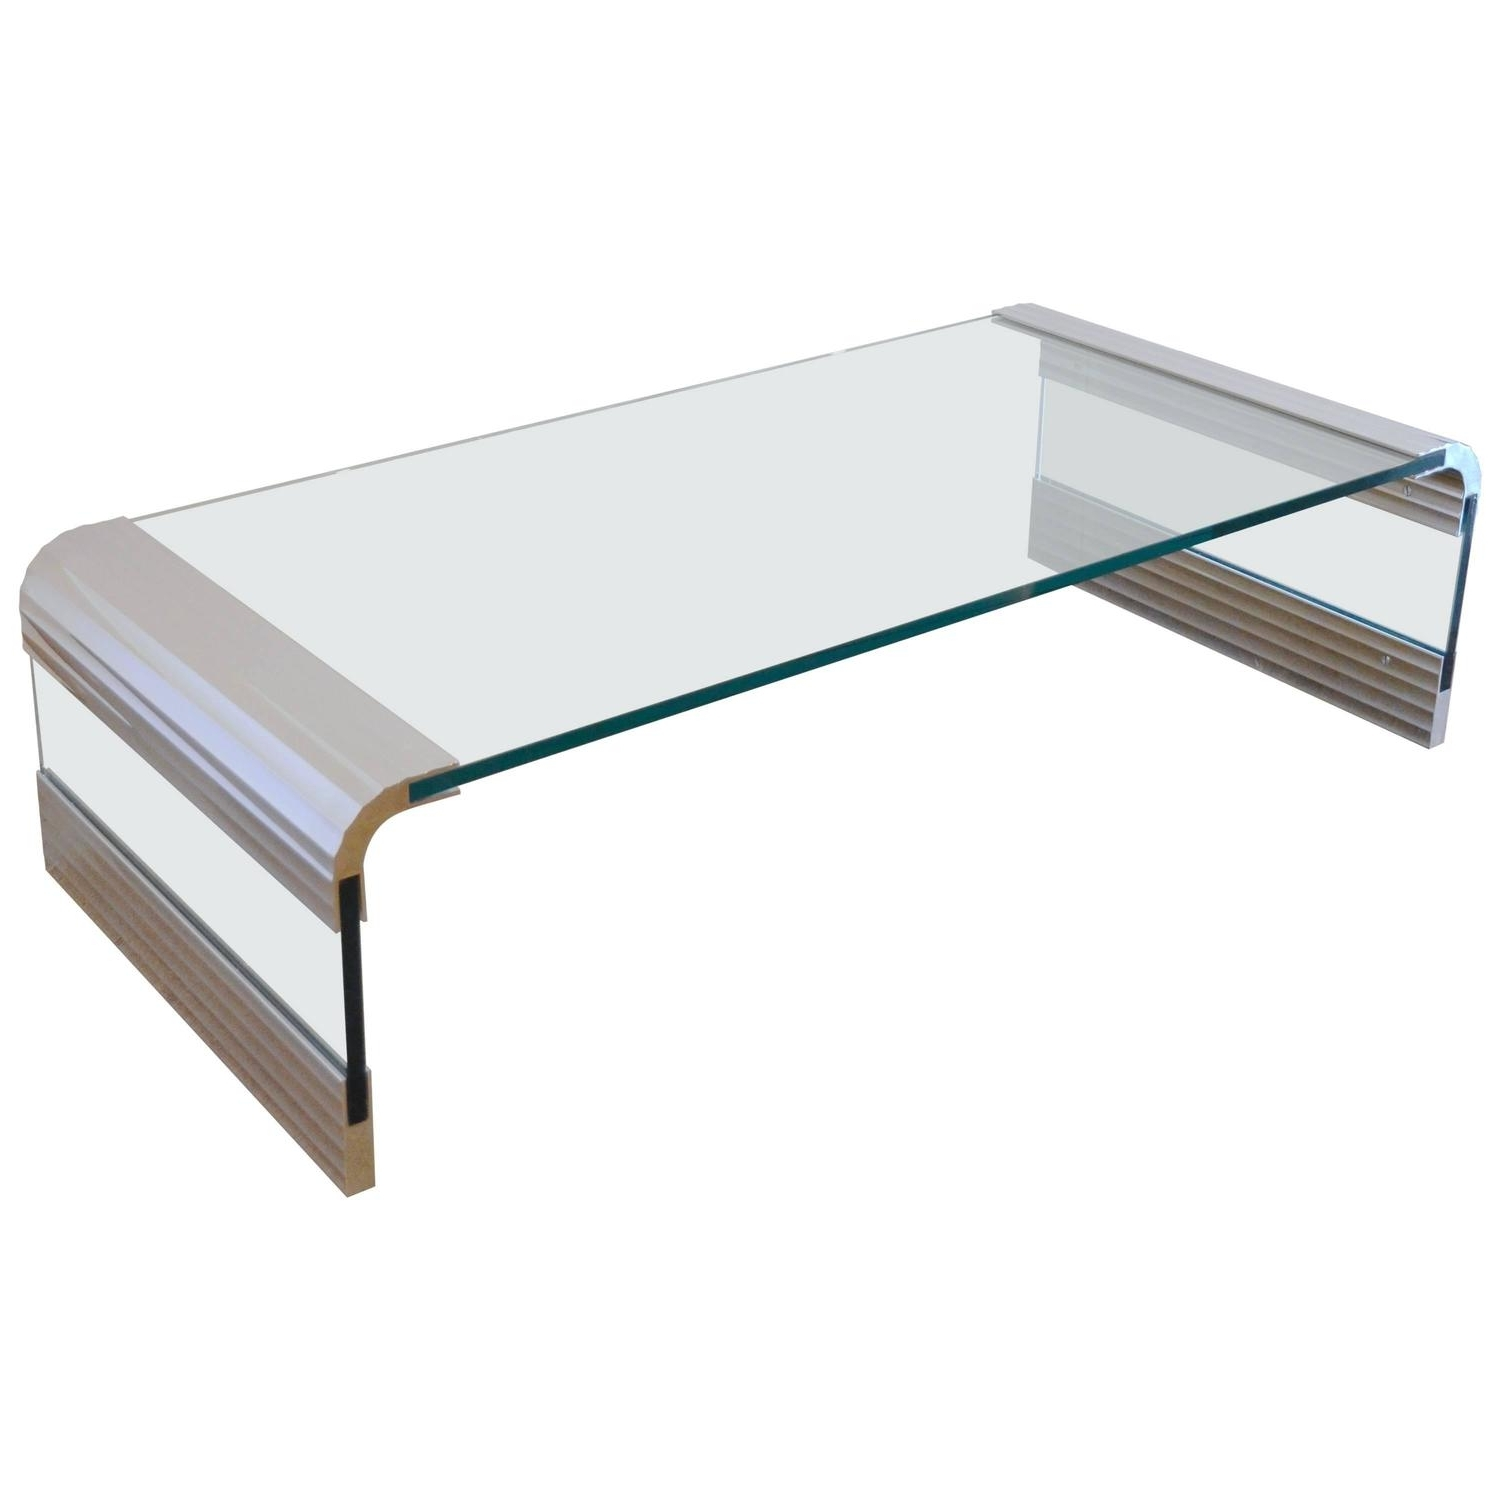 Pace Collection Coffee And Cocktail Tables – 83 For Sale At 1Stdibs Throughout Best And Newest Square Waterfall Coffee Tables (View 15 of 20)